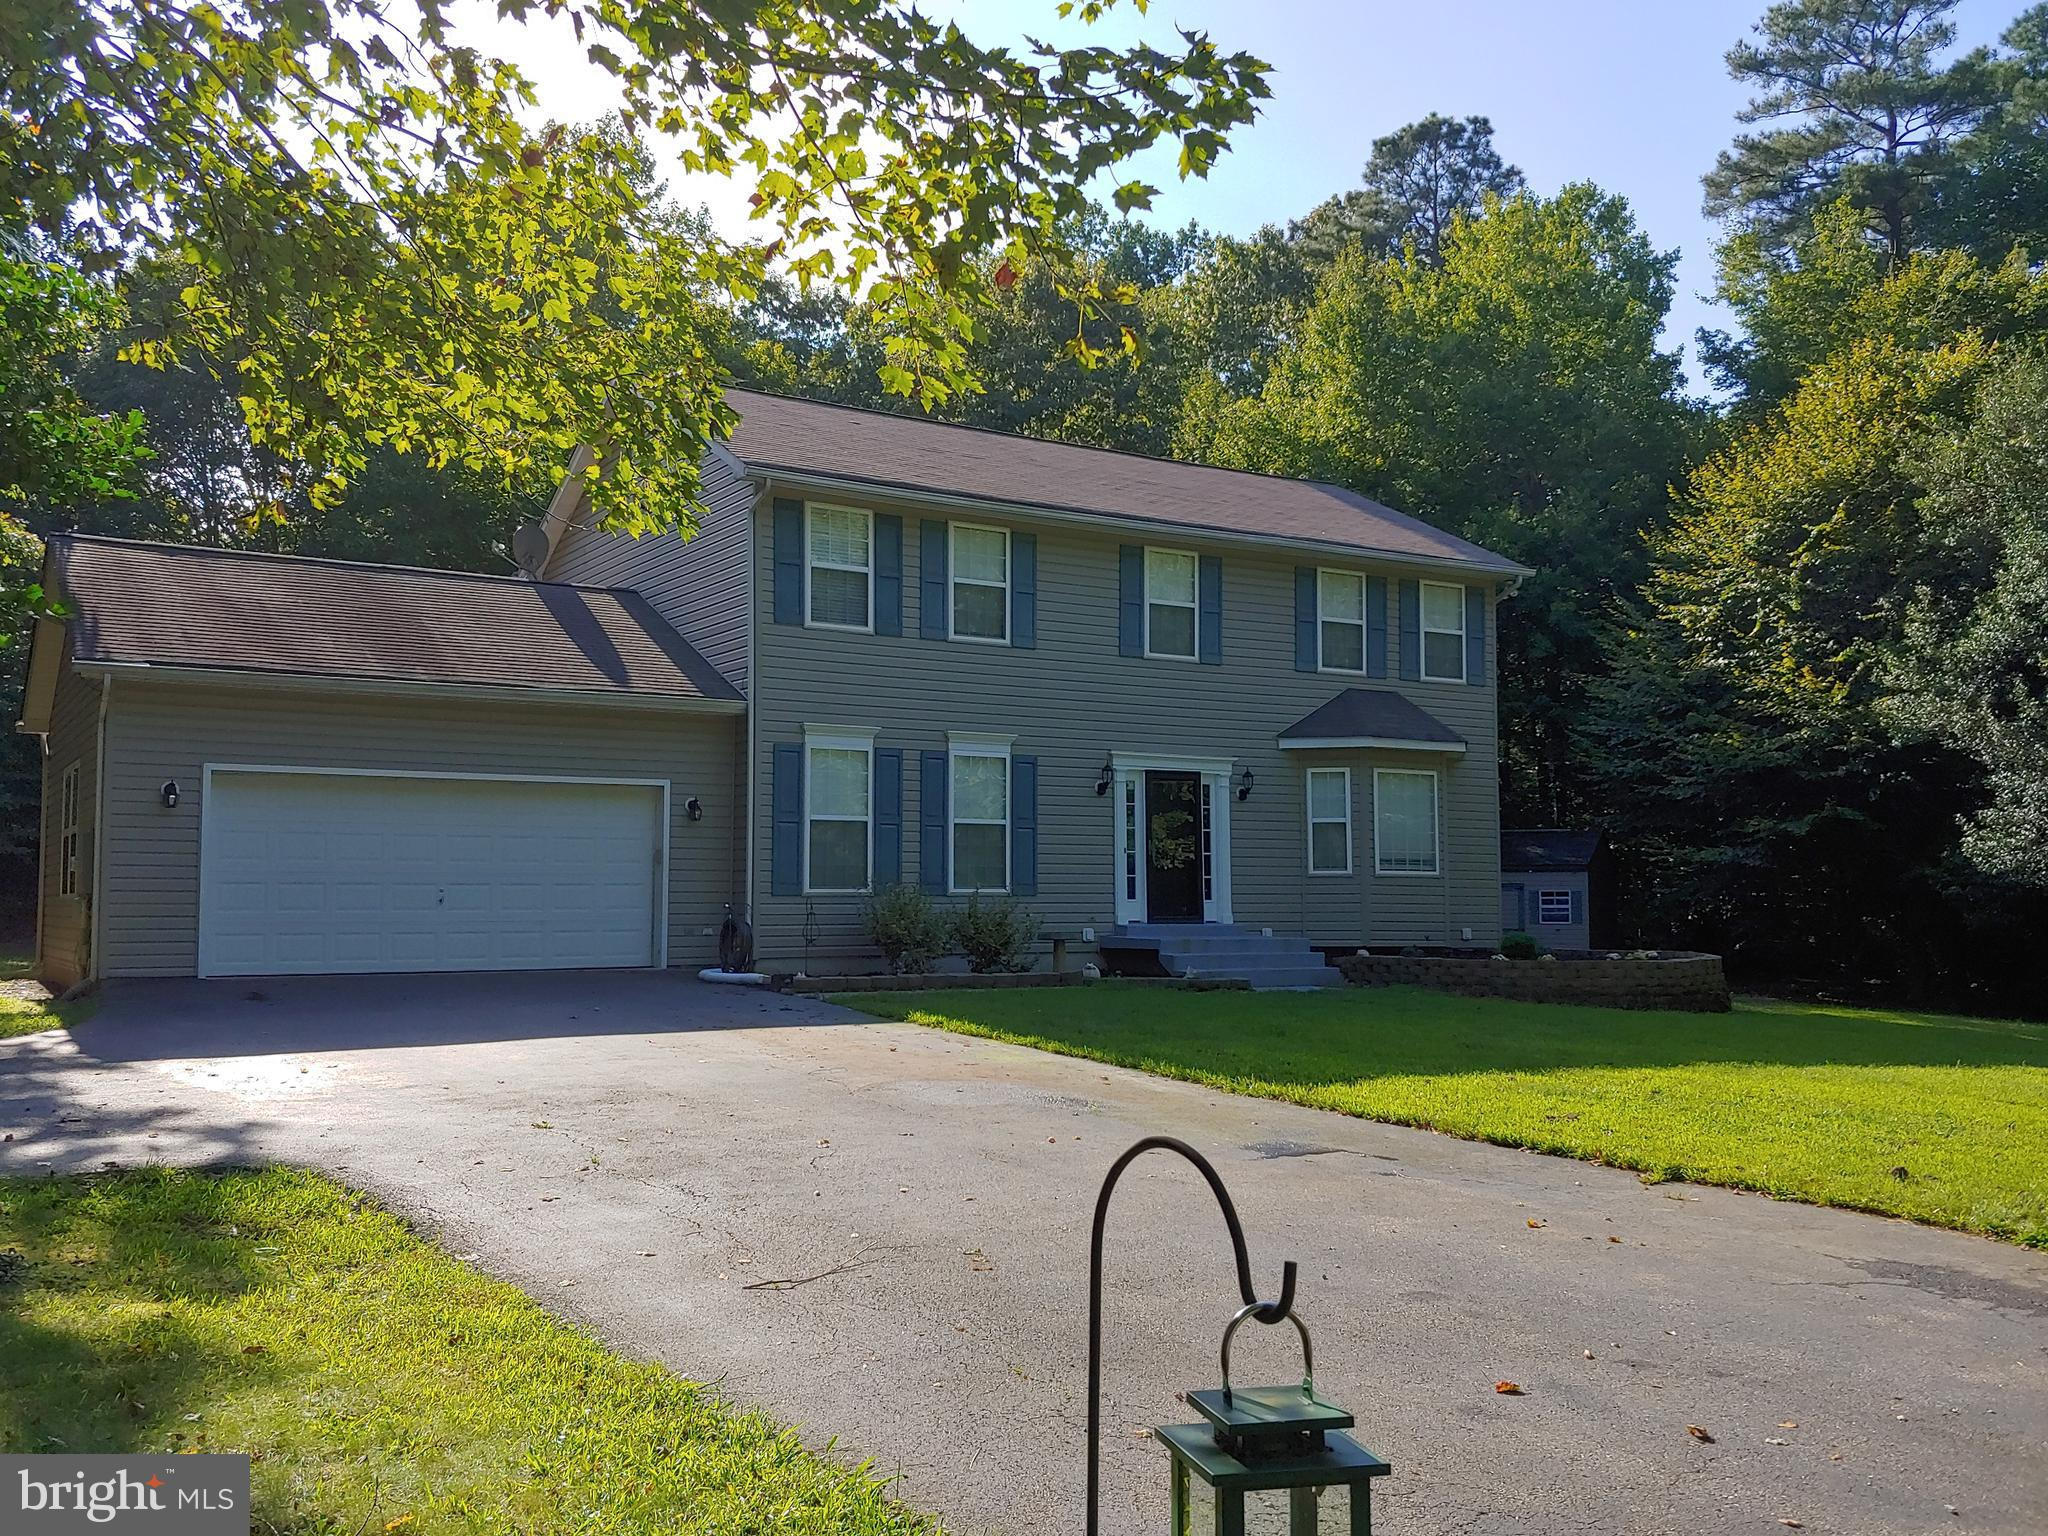 This is a must see property over 2 acres backing up to Conservation Forest area. This 4 Bedroom 2 fu